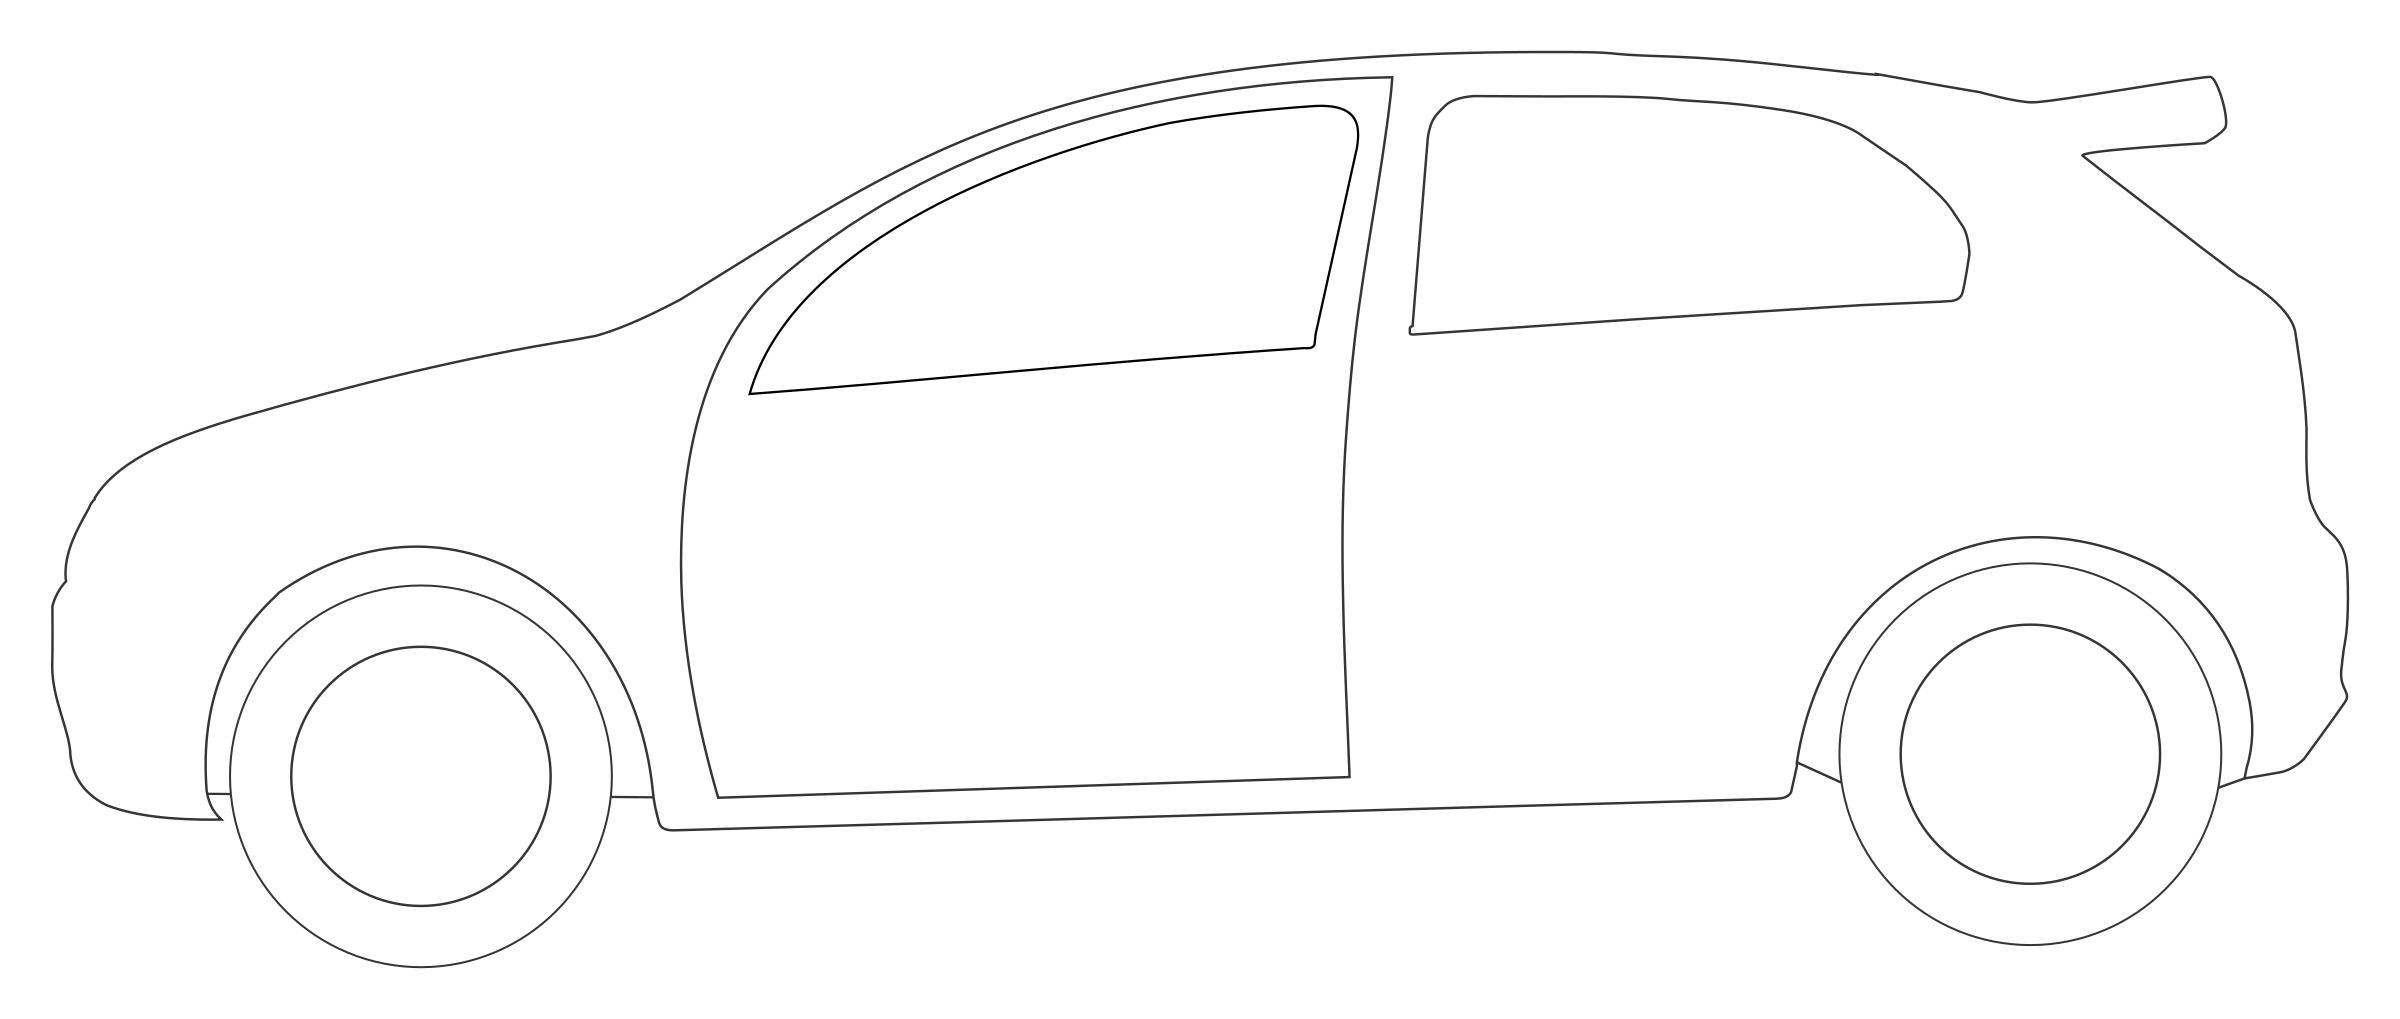 clipart rally car side view shape